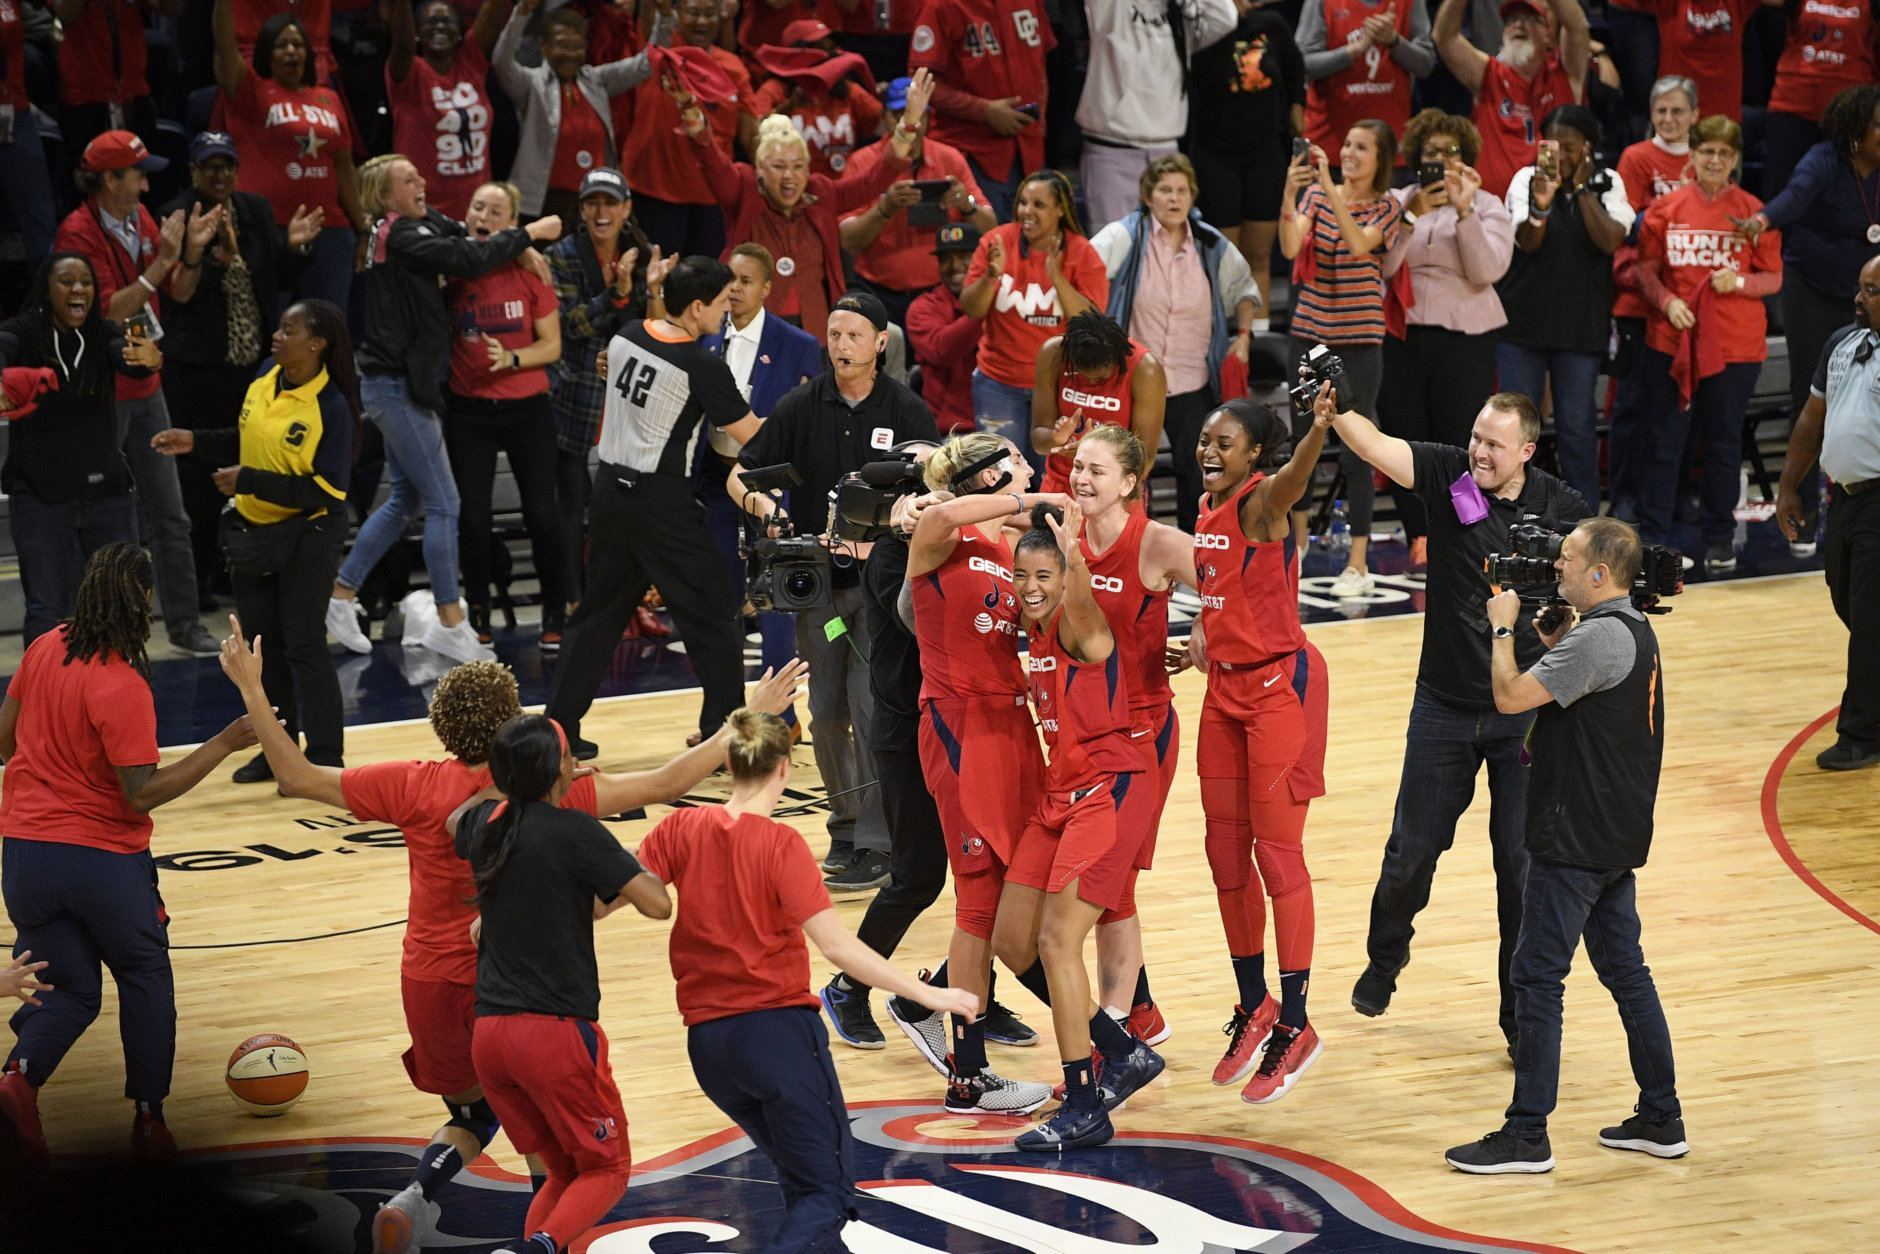 The Washington Mystics celebrate after they beat the Connecticut Sun in Game 5 of basketball's WNBA Finals, Thursday, Oct. 10, 2019, in Washington. (AP Photo/Nick Wass)